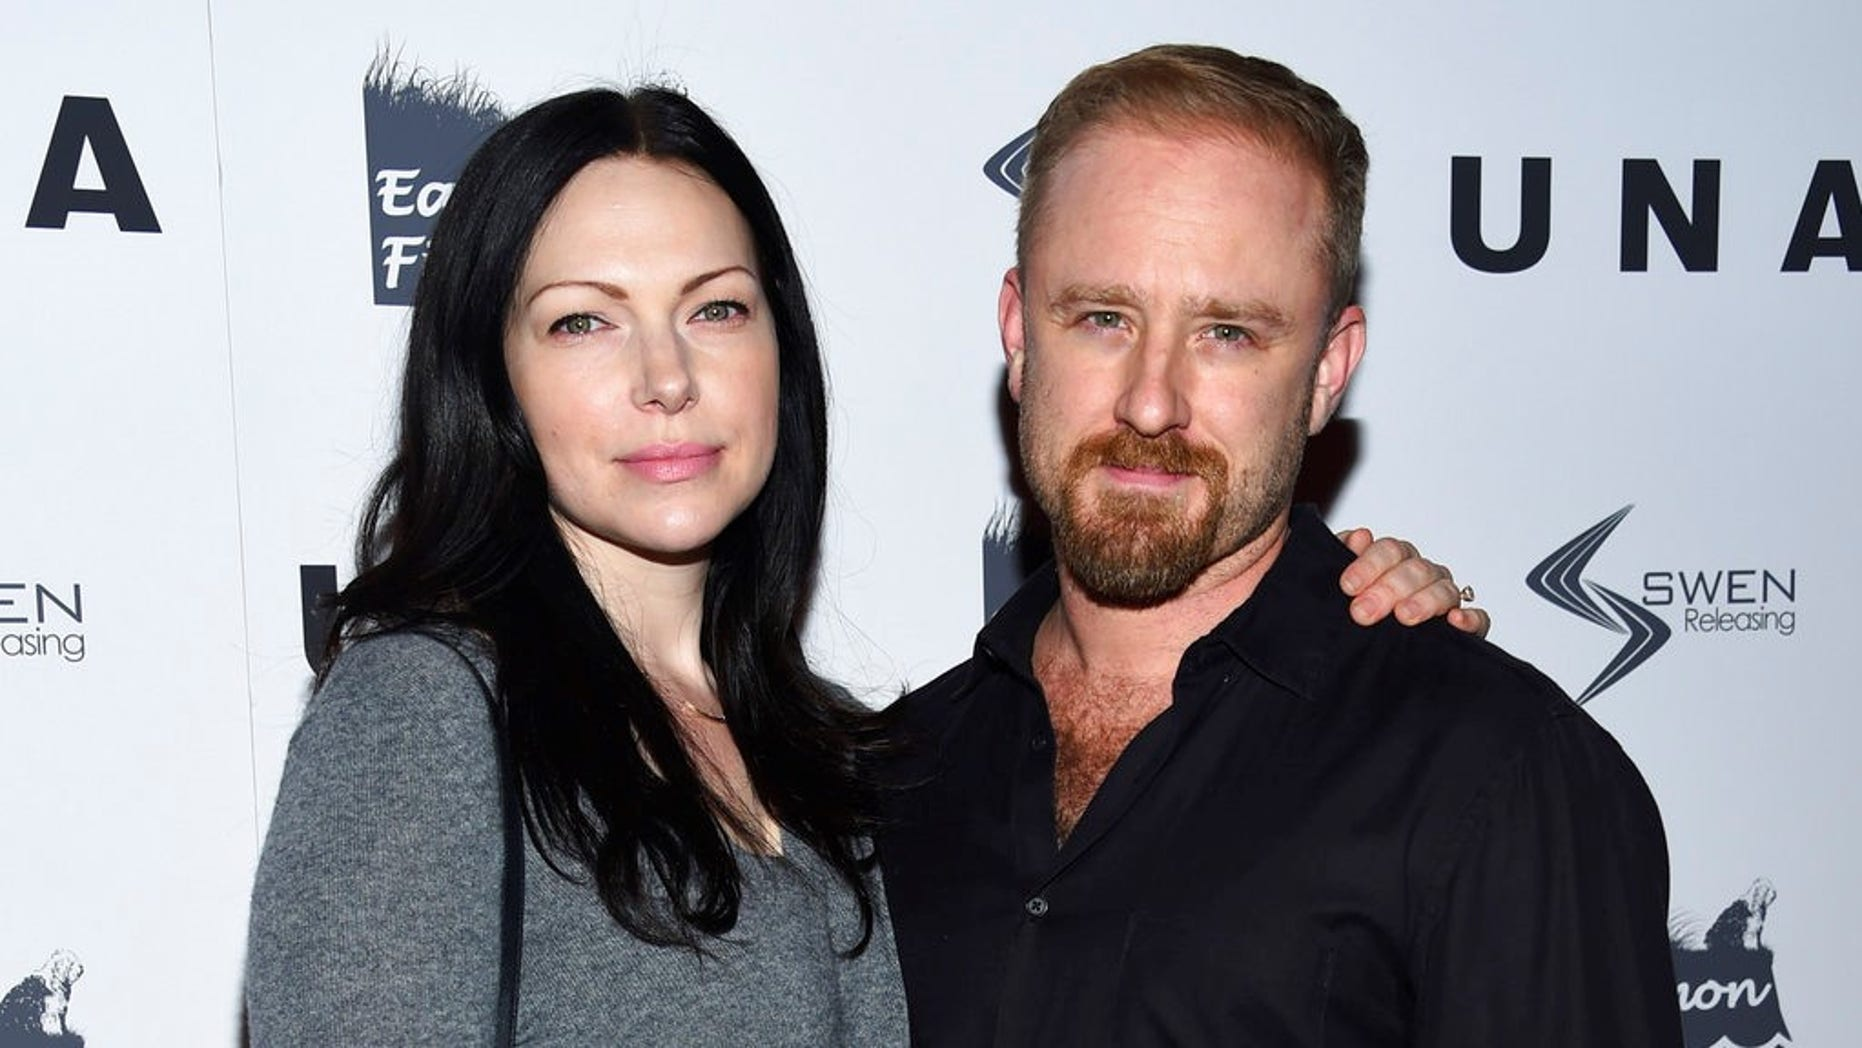 Prepon shared a photo on social media and announced Sunday that she and Foster had tied the knot.